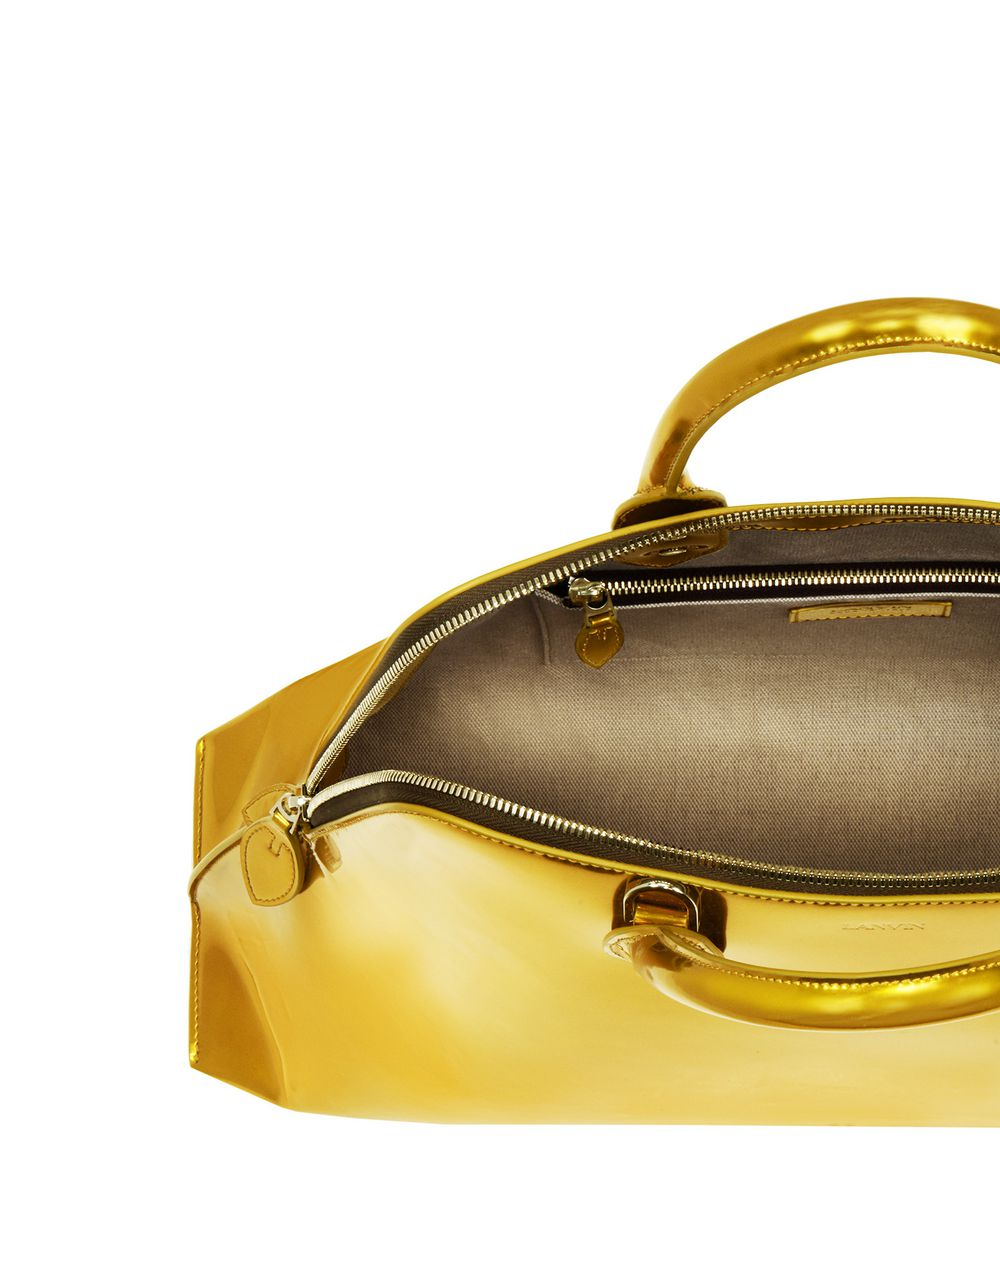 MAGOT METALLIC BAG MEDIUM - Lanvin